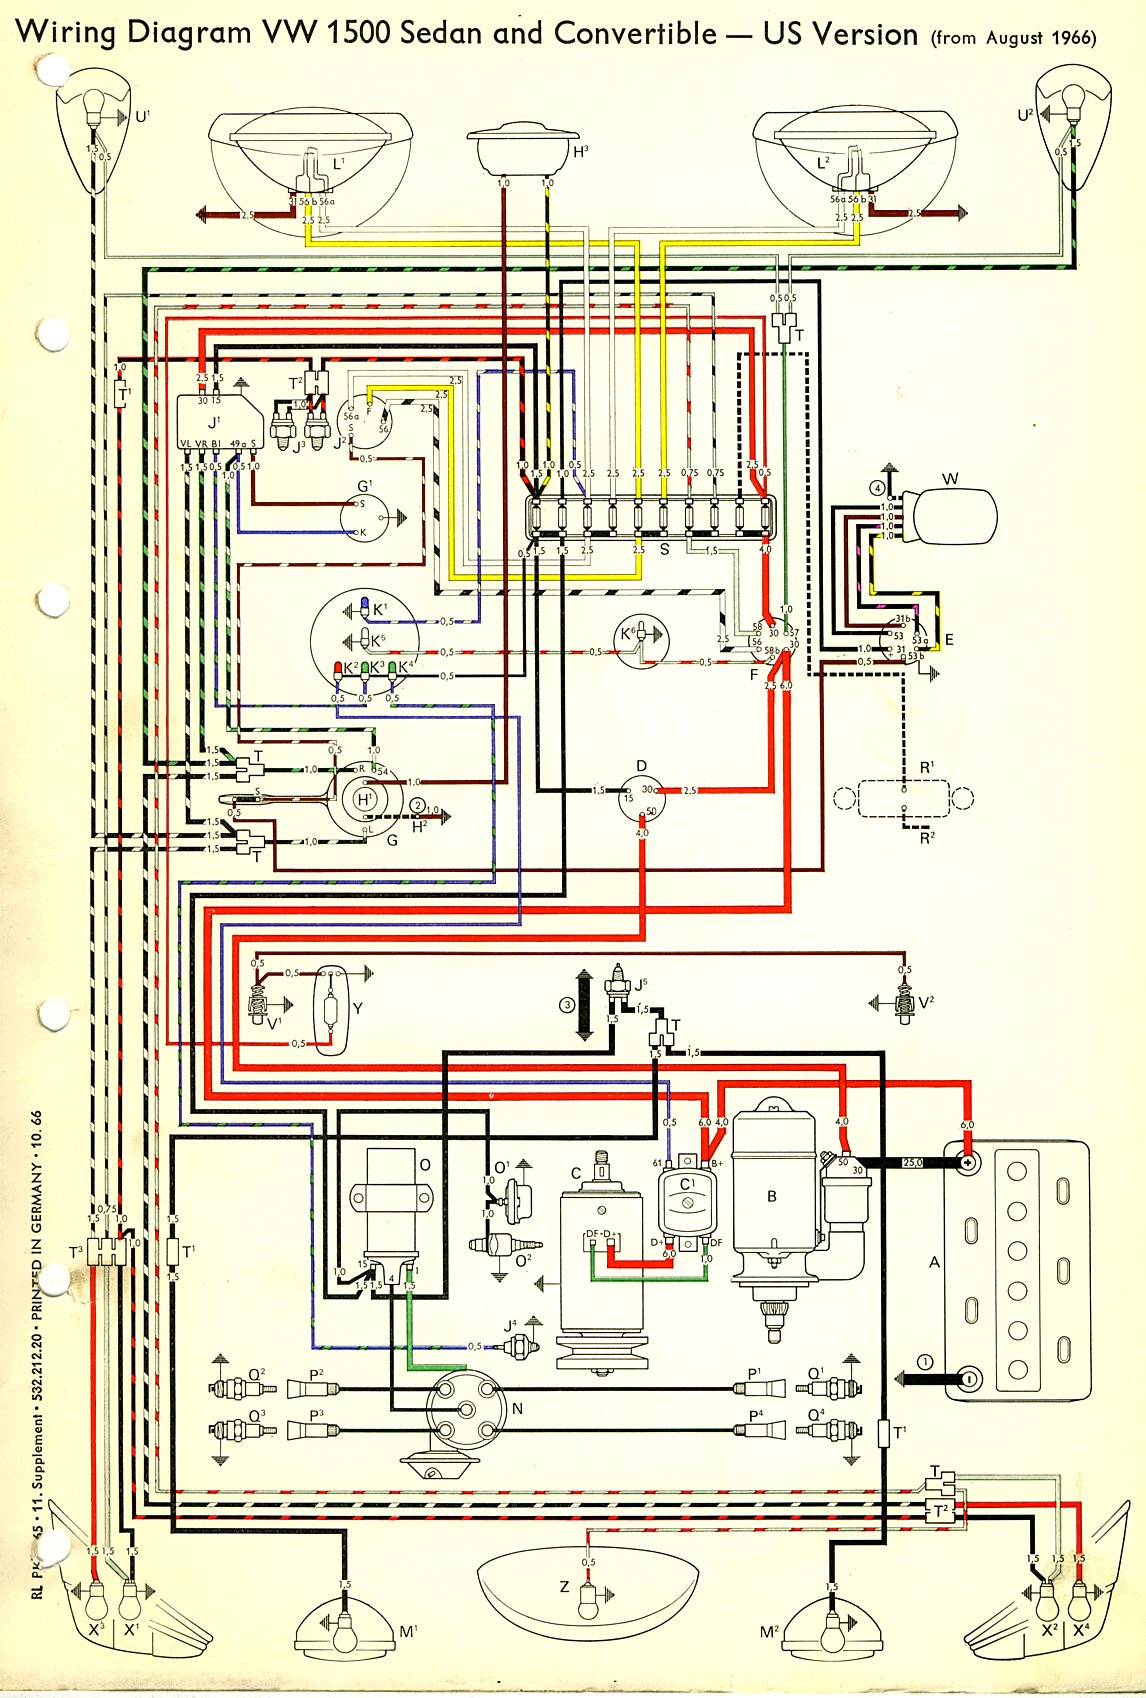 similiar vw beetle wiring diagram keywords 1967 beetle wiring diagram usa thegoldenbug com